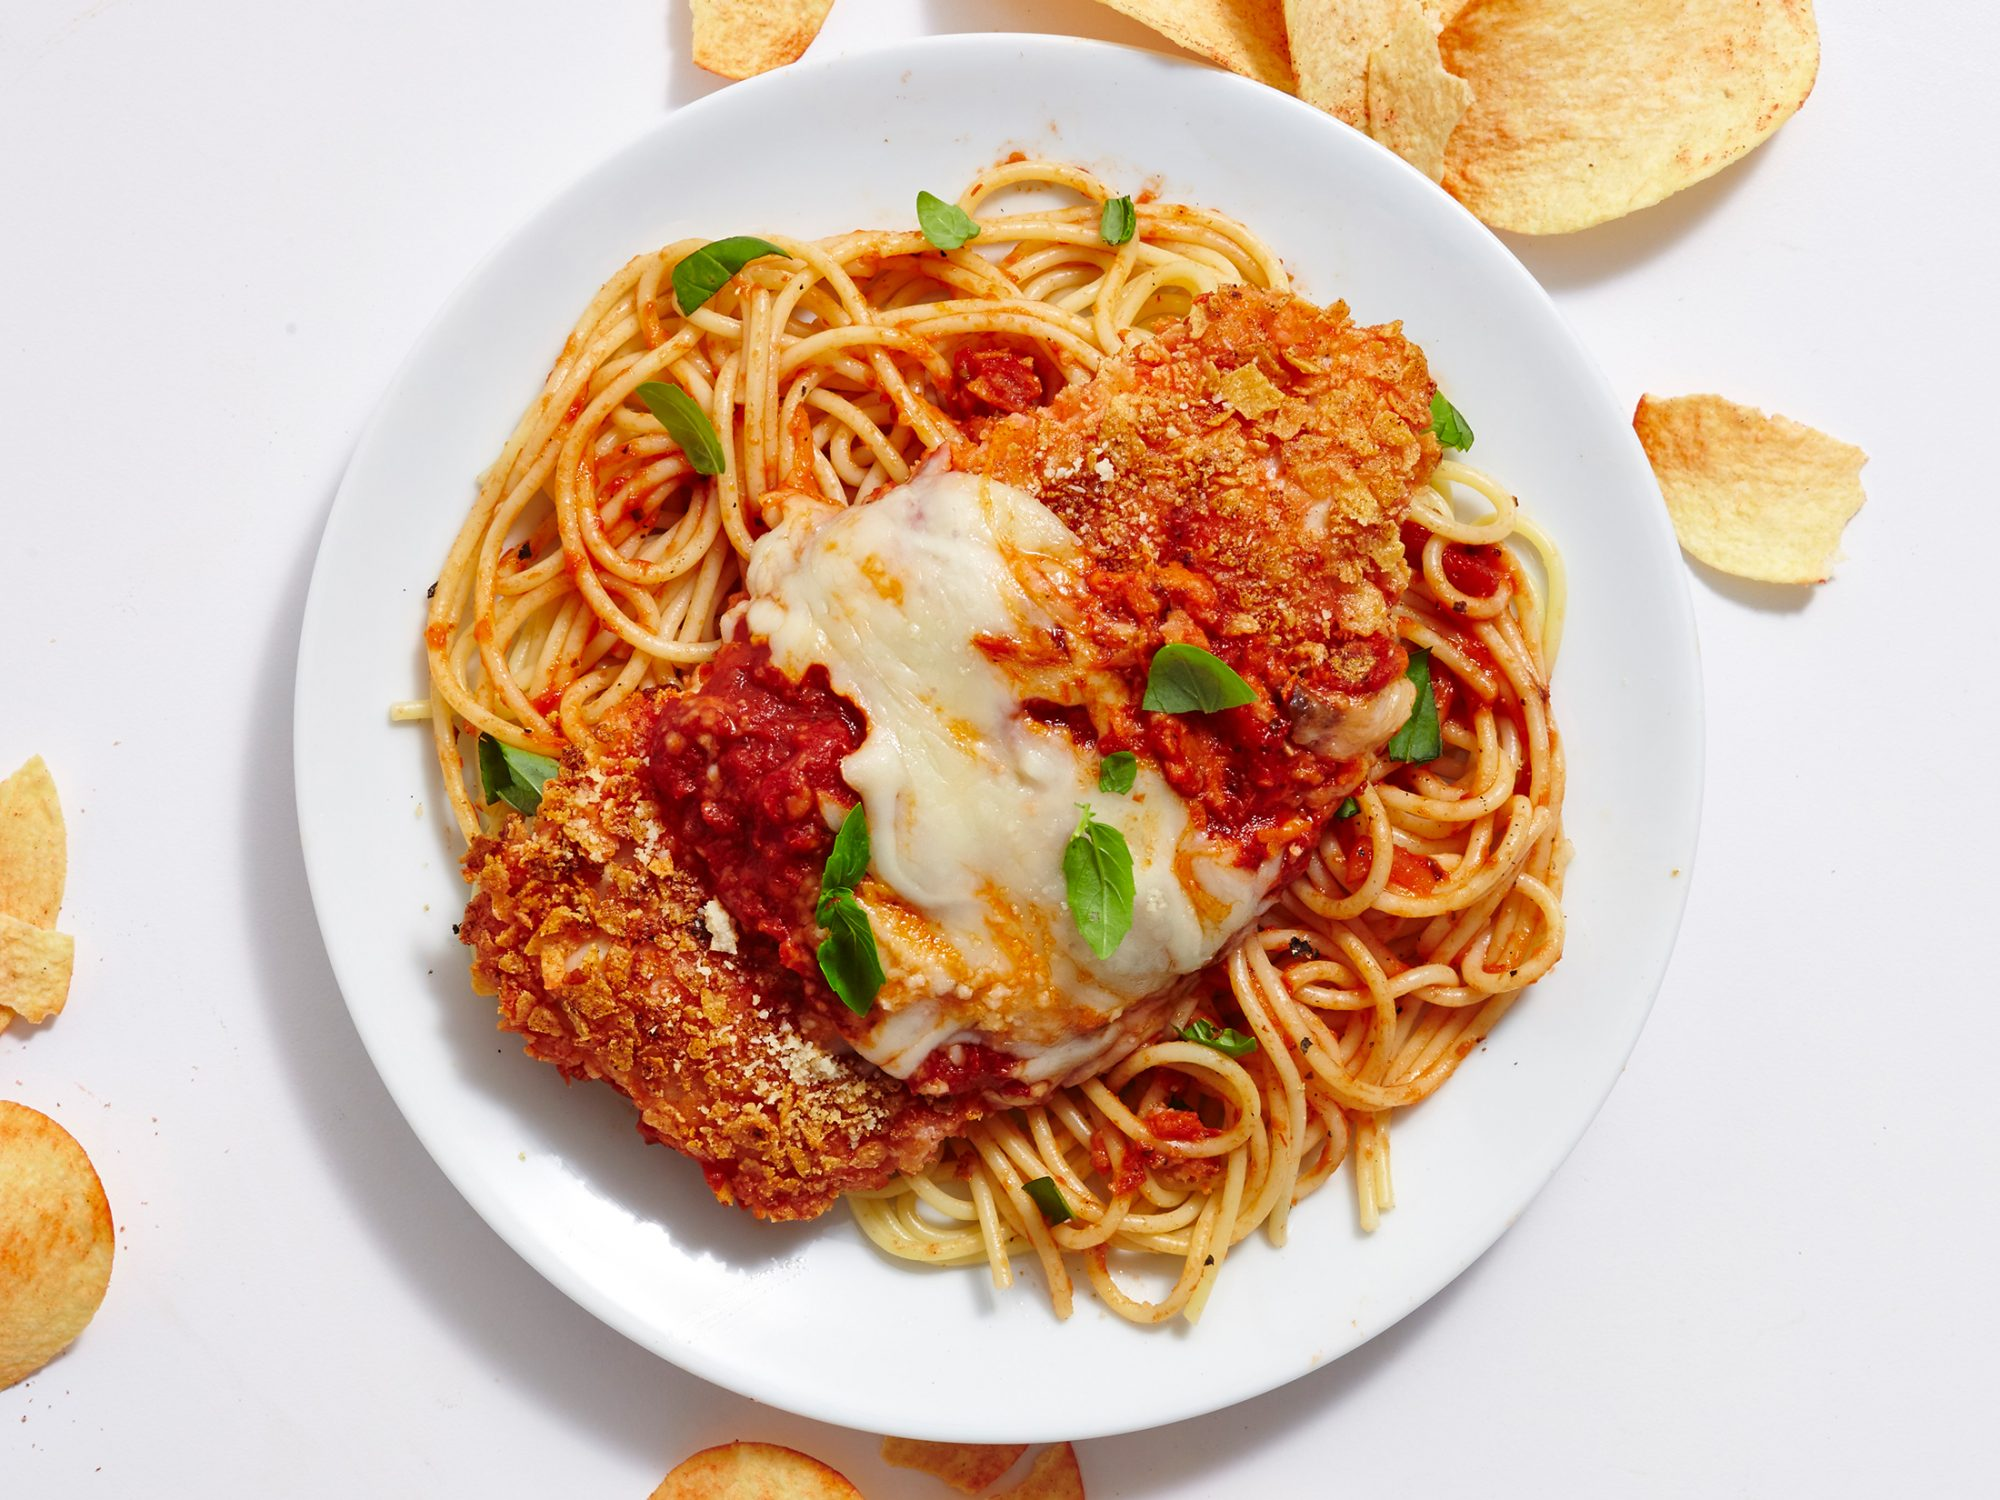 Pizza Pringles Chicken Parmesan image